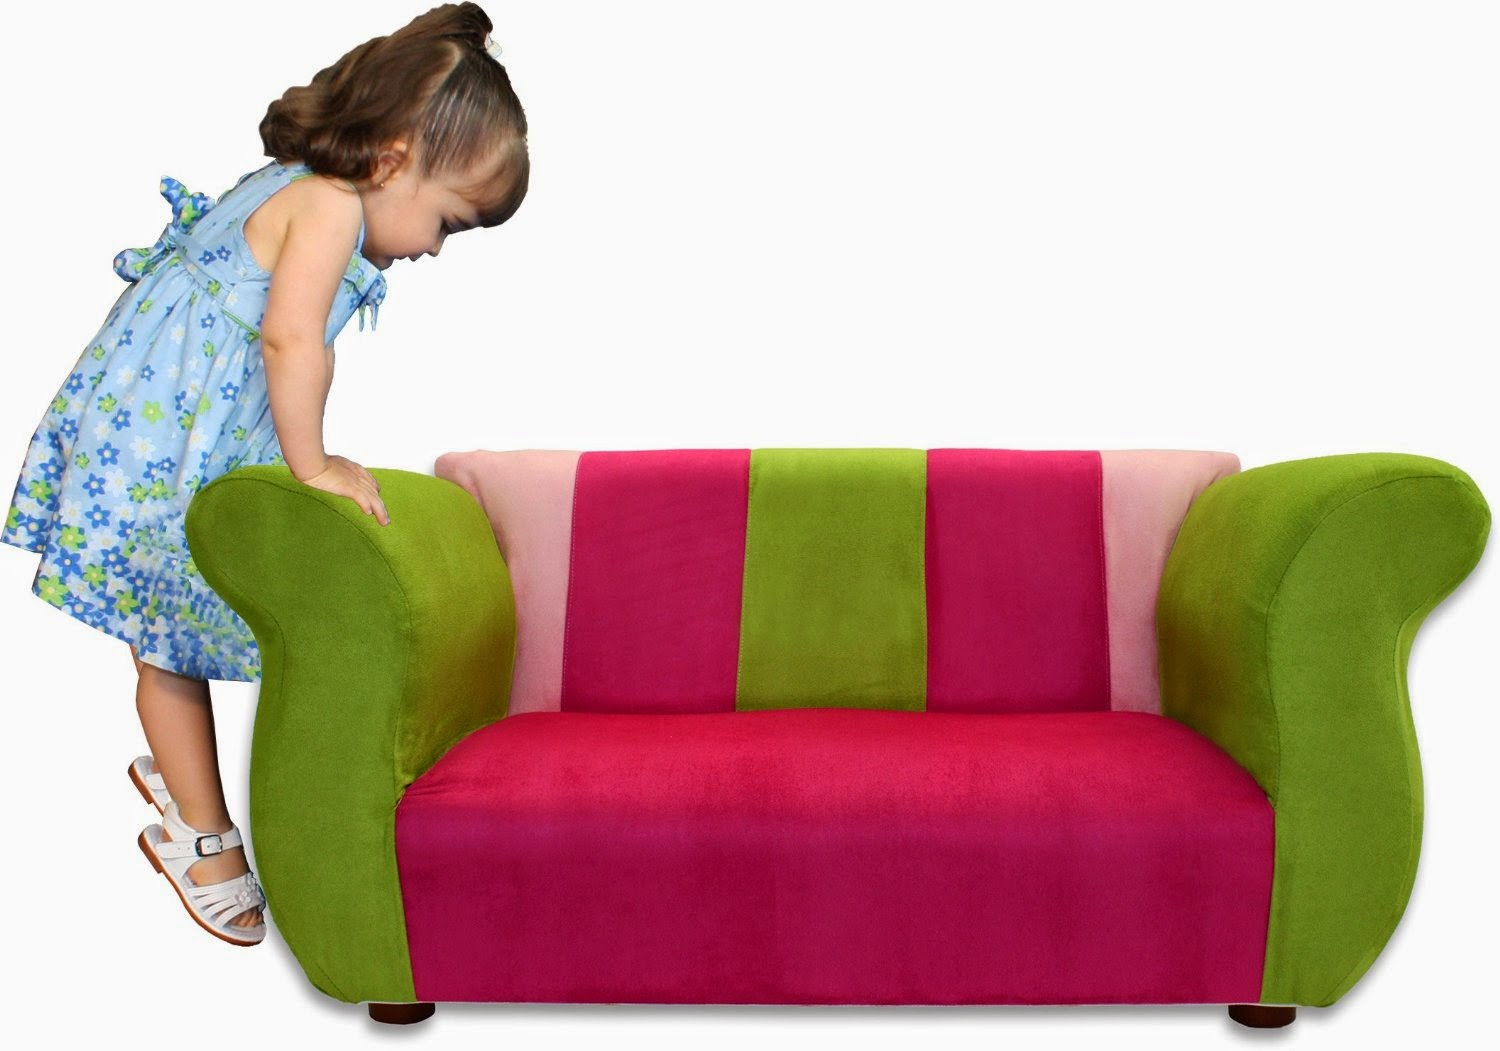 Toddler Couch Kids Couch Mini Couch For Kids